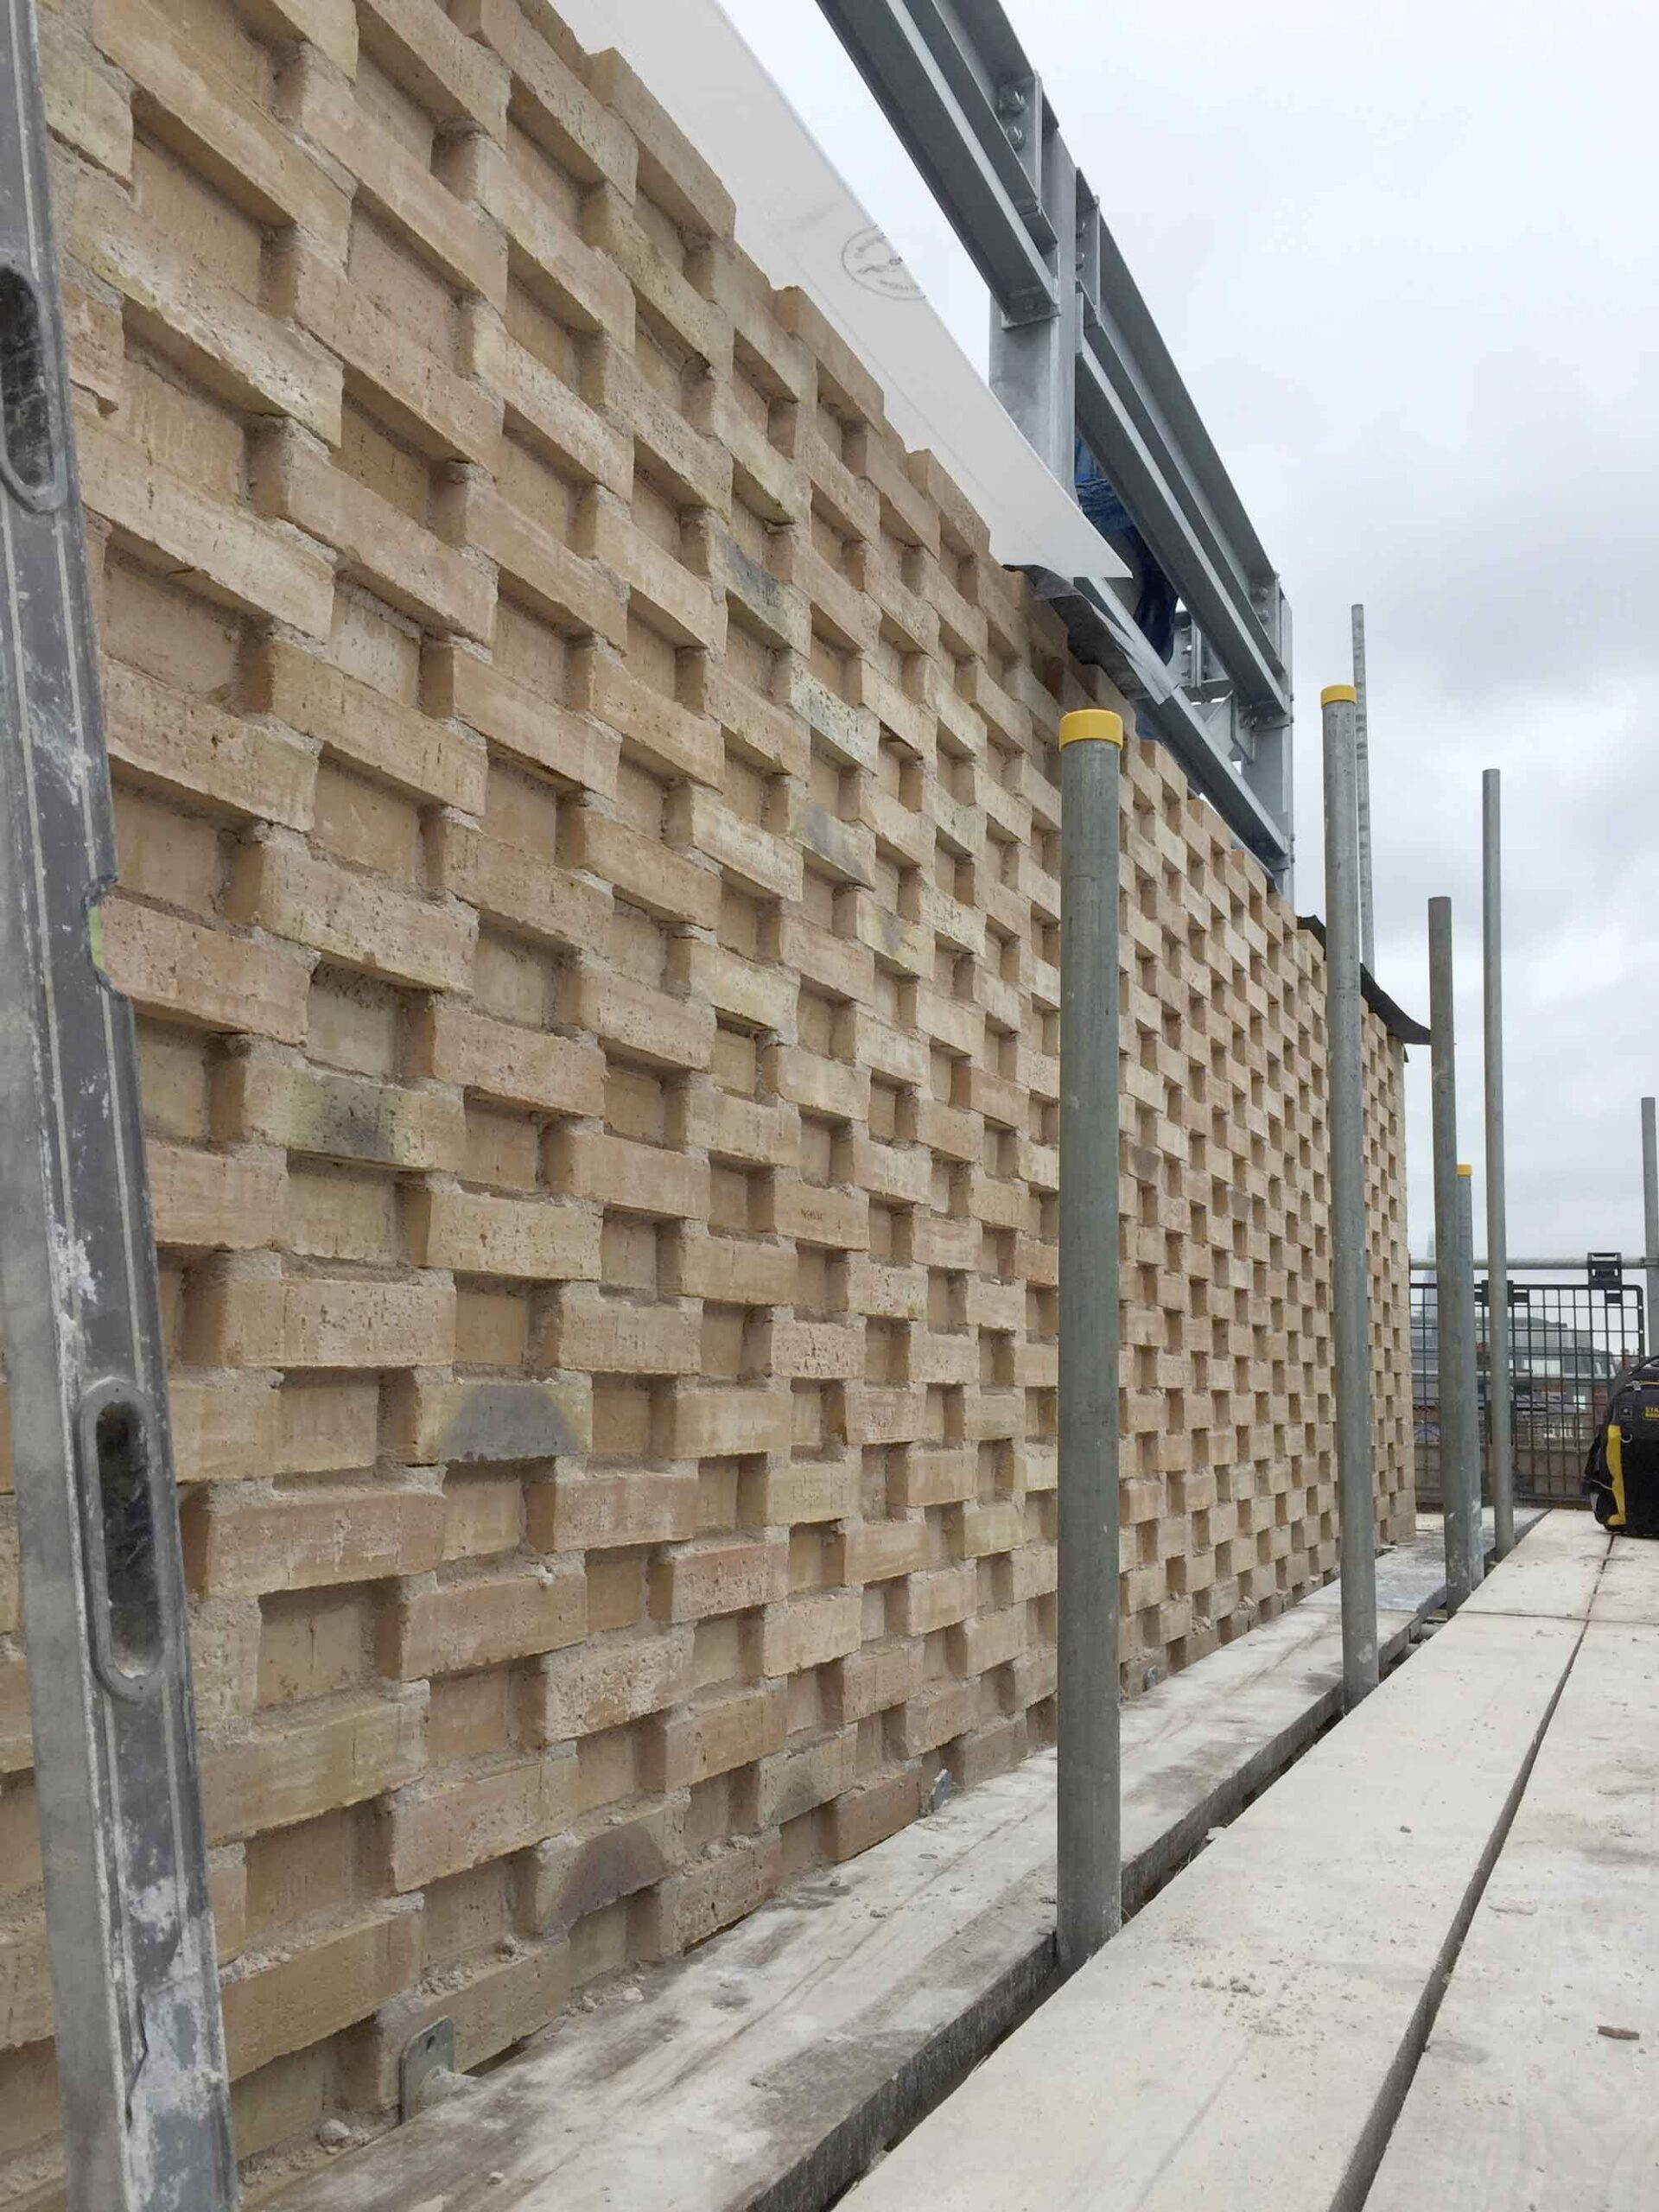 westminster-fire-station-openstudio-architects-bric-pattern